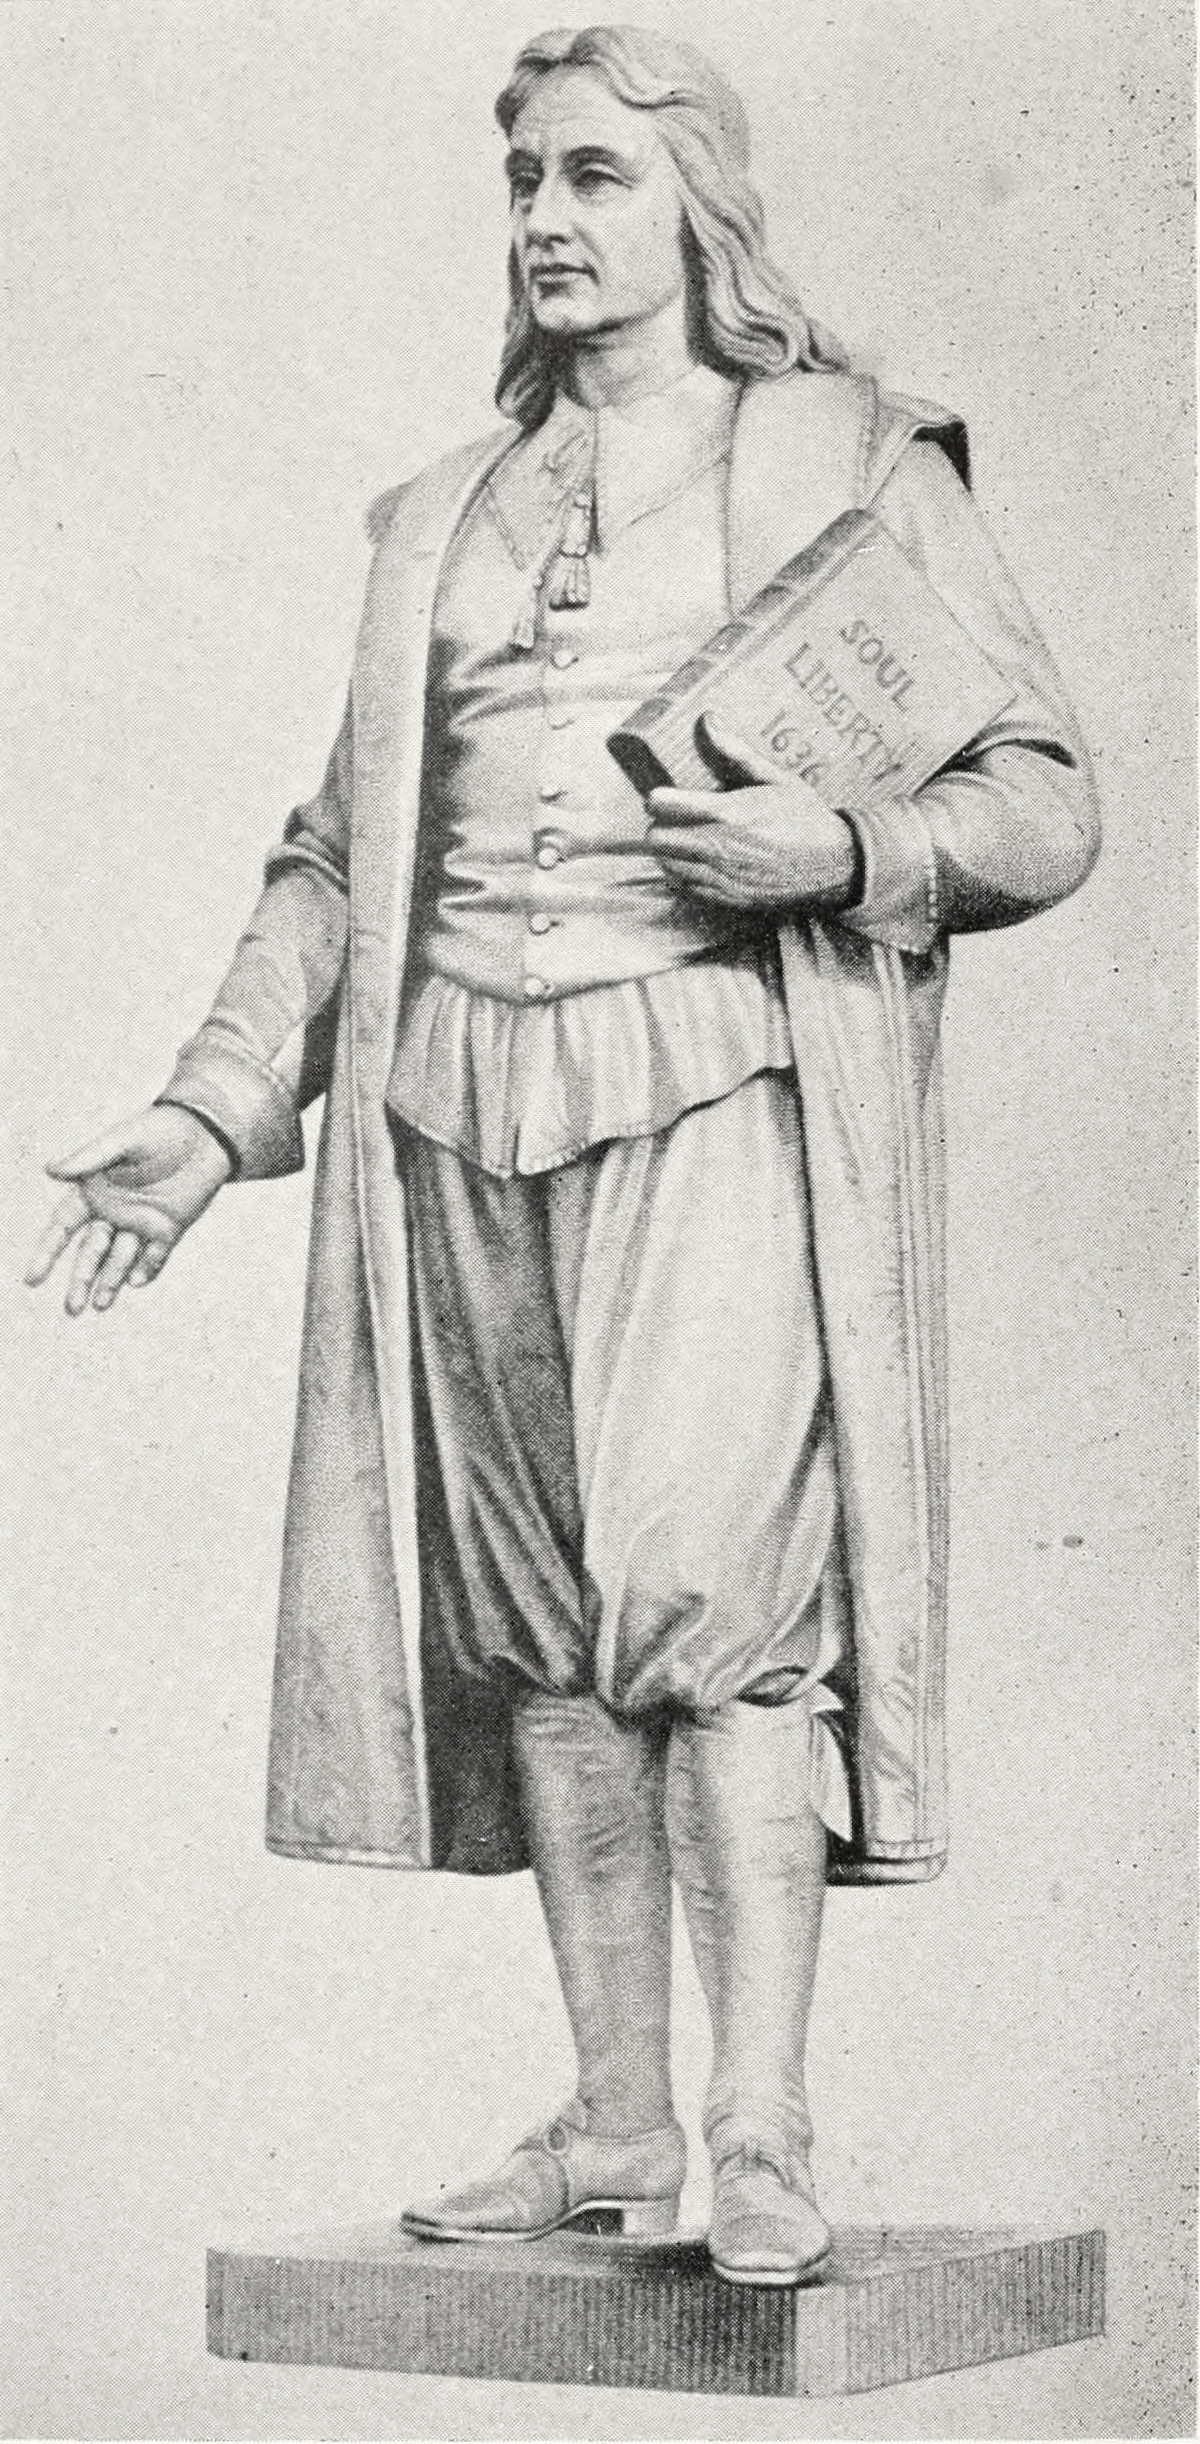 Depiction of Roger Williams